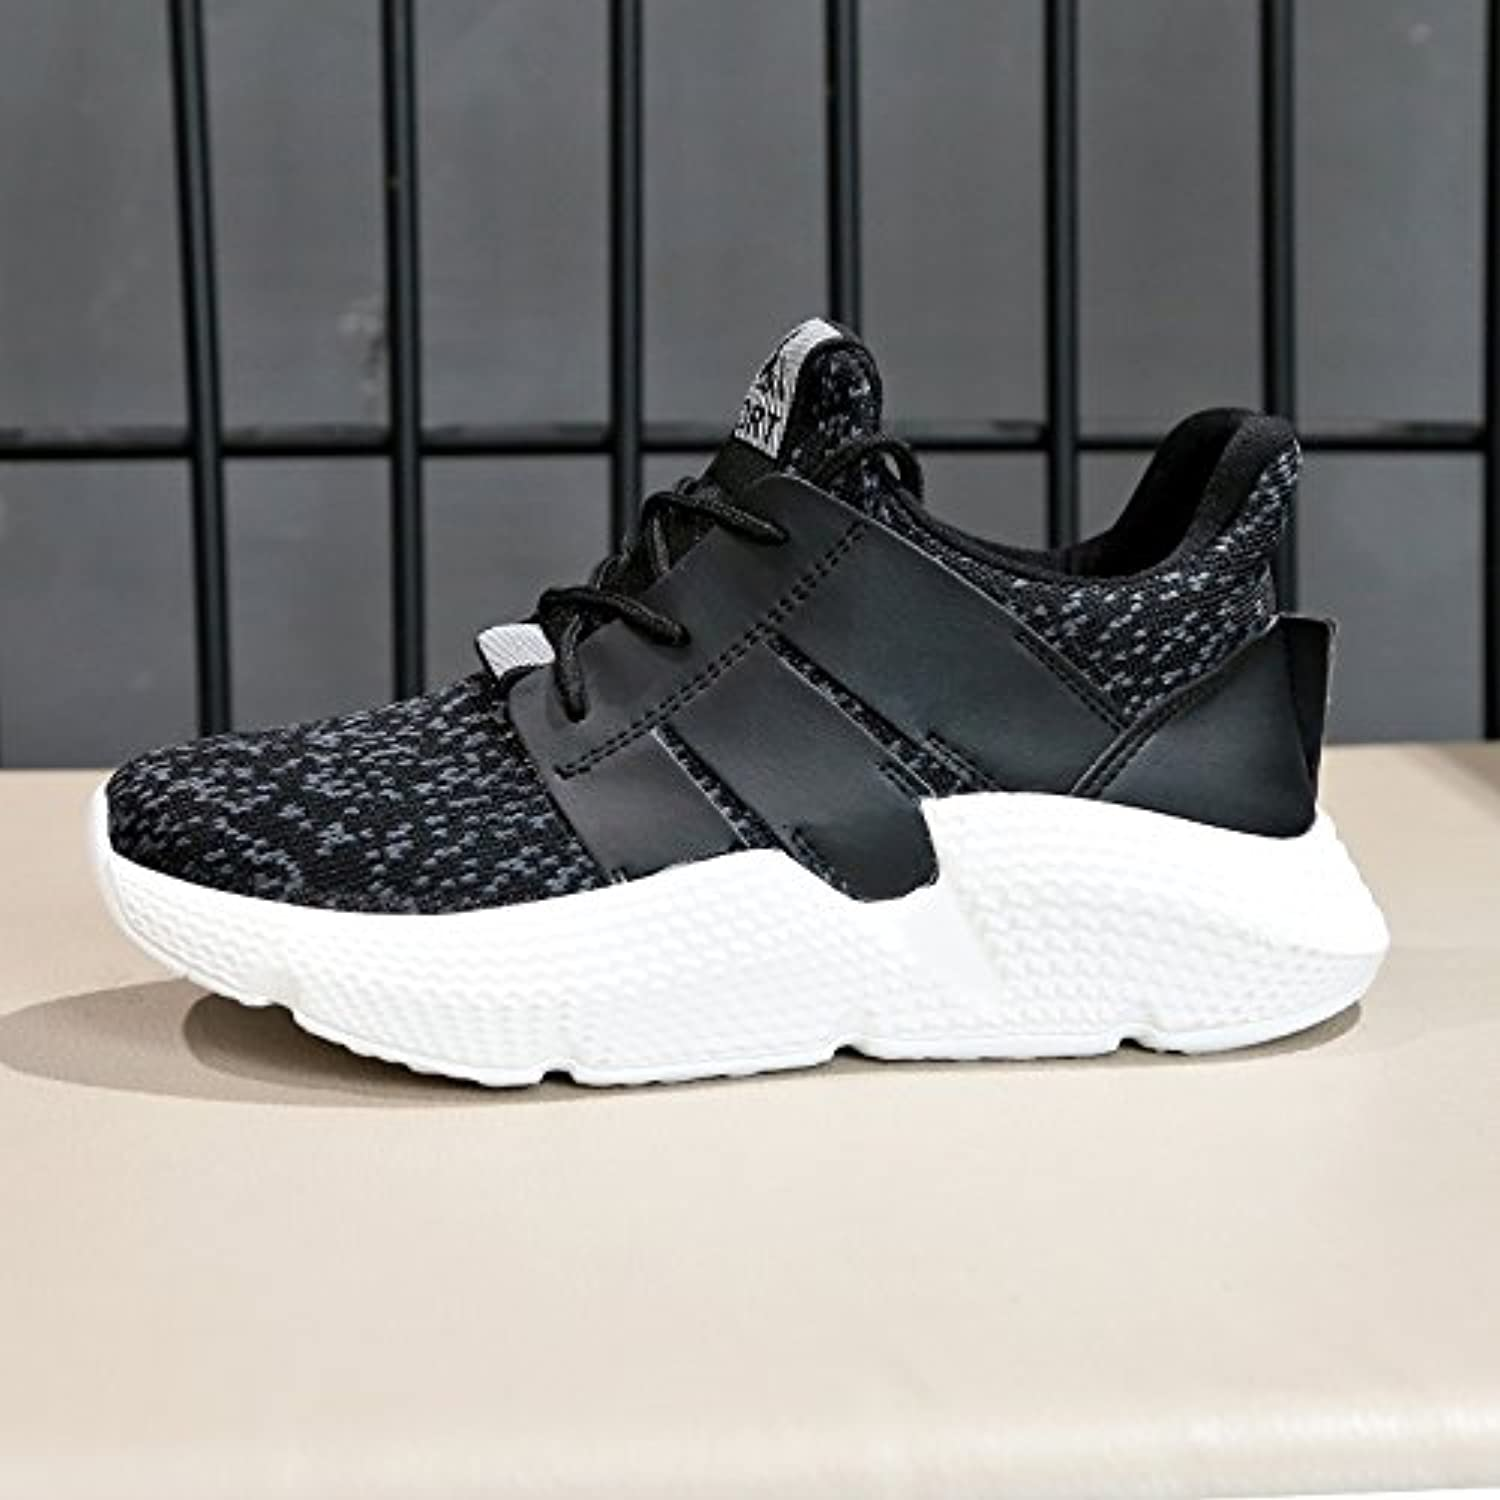 Homme Femme GUNAINDMX  Shoes/Sports/Casual Shoes Shoes/New/All-Match/.B07BD68MJFParent Shoes/New/All-Match/.B07BD68MJFParent Shoes Conception innovante confortabilité Entreprise directe ea9177